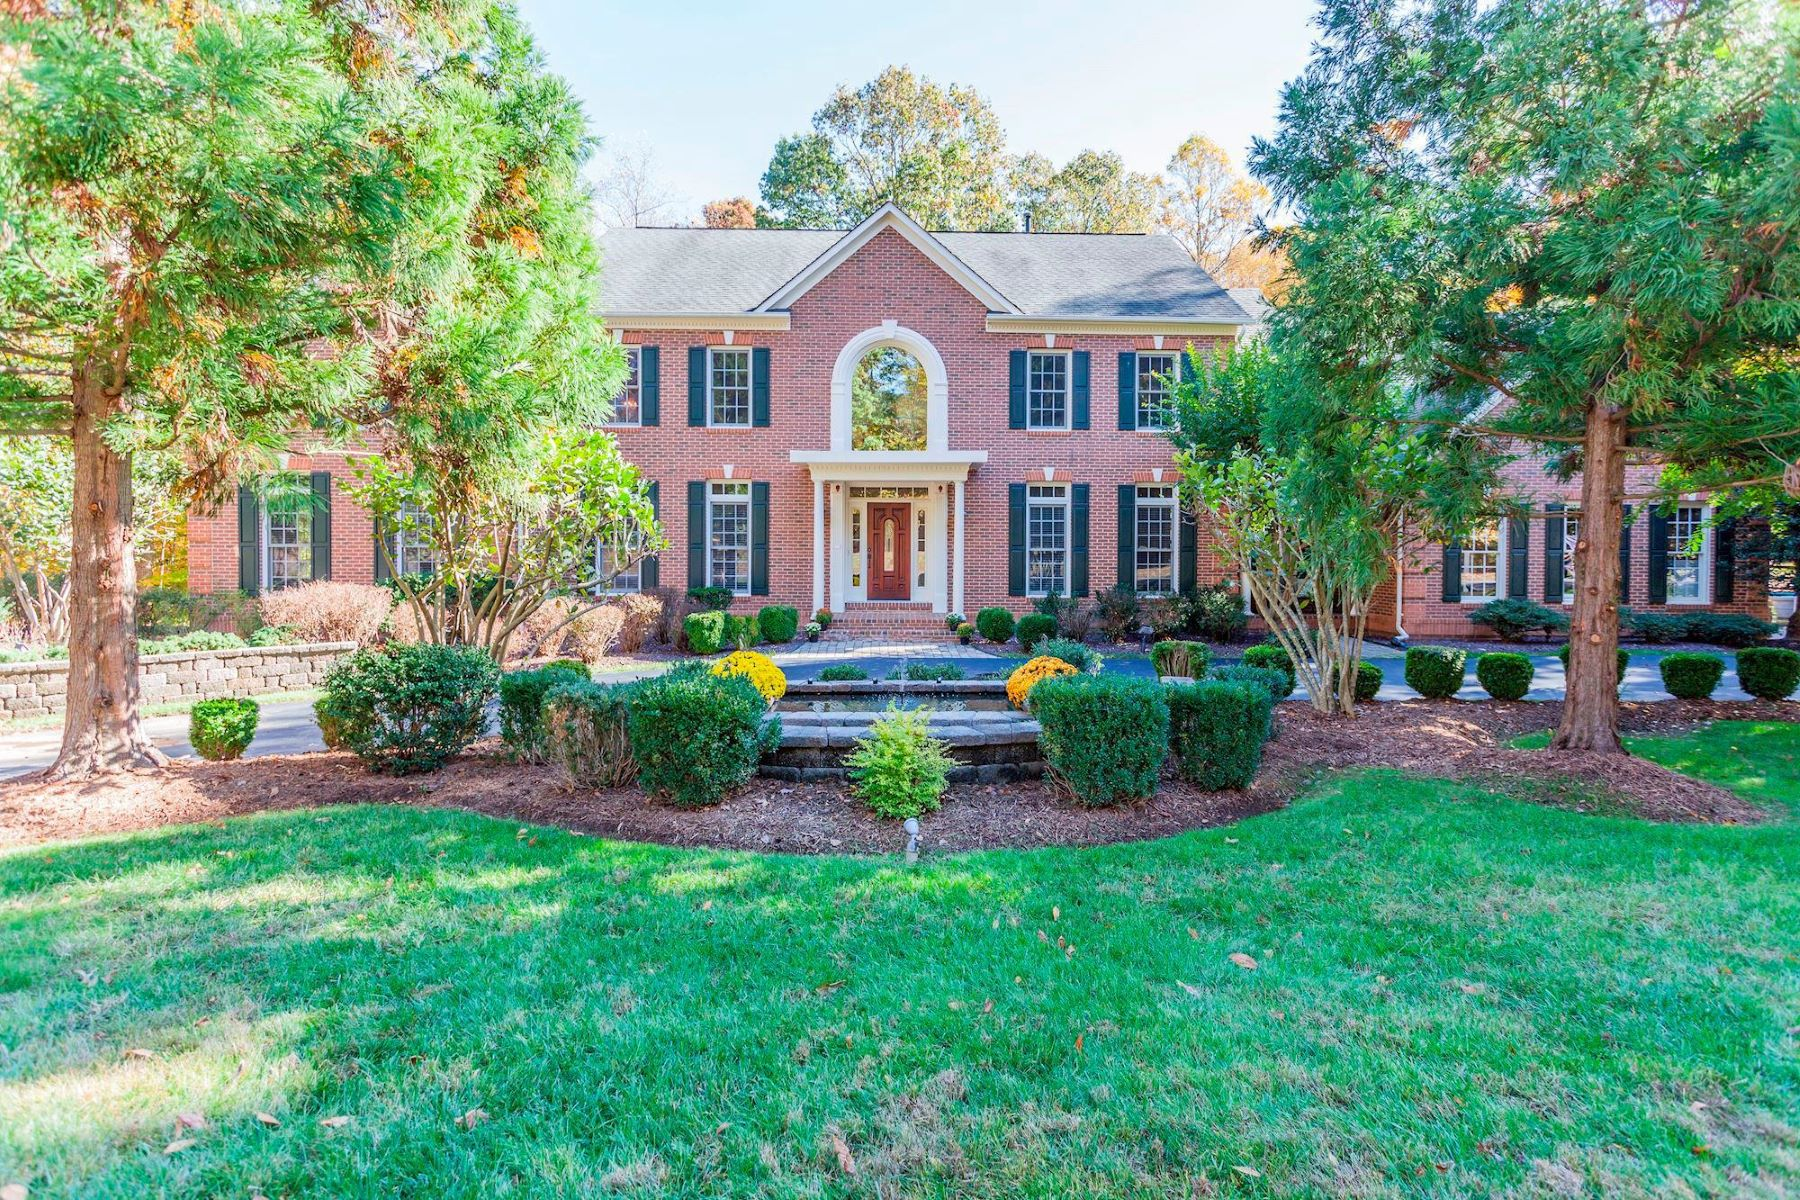 Single Family Homes for Active at 7505 Cannon Fort Dr Clifton, Virginia 20124 United States